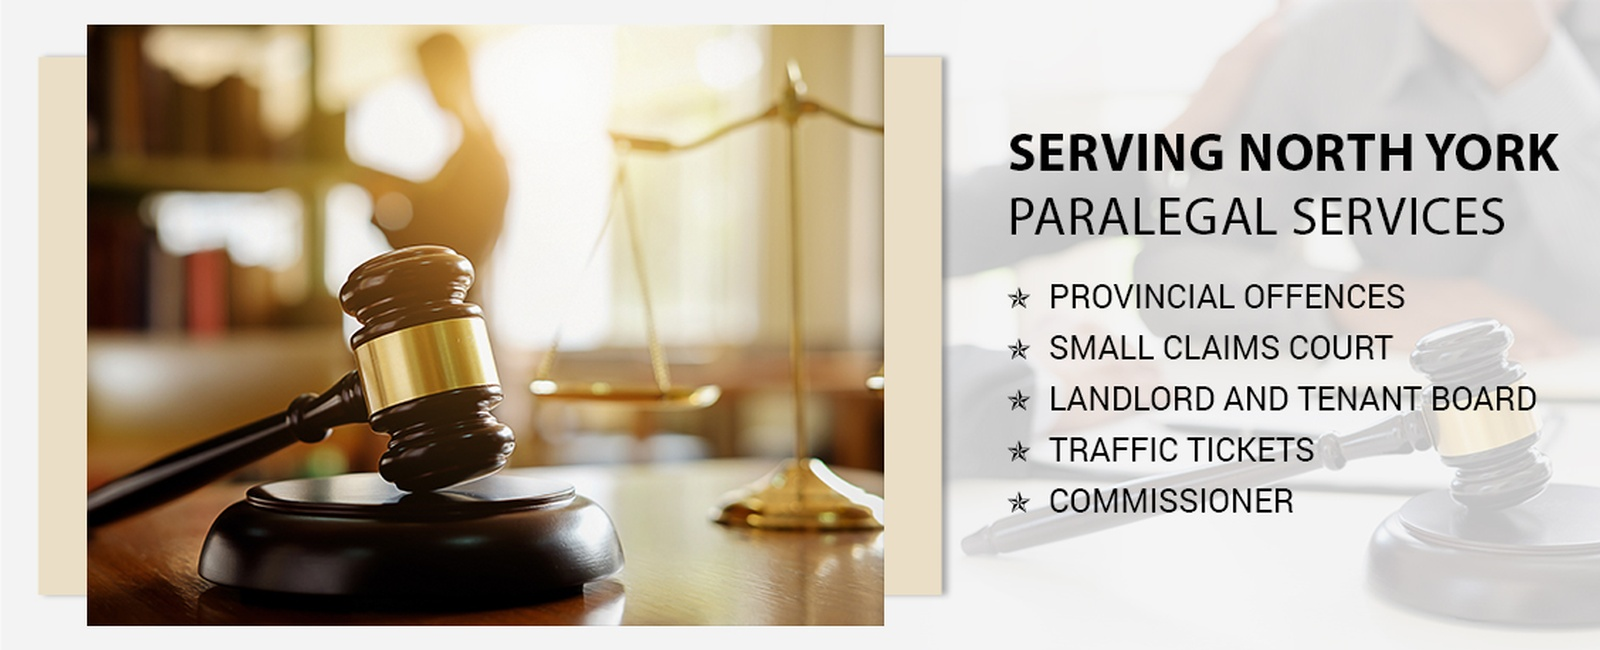 Paralegal services in North York